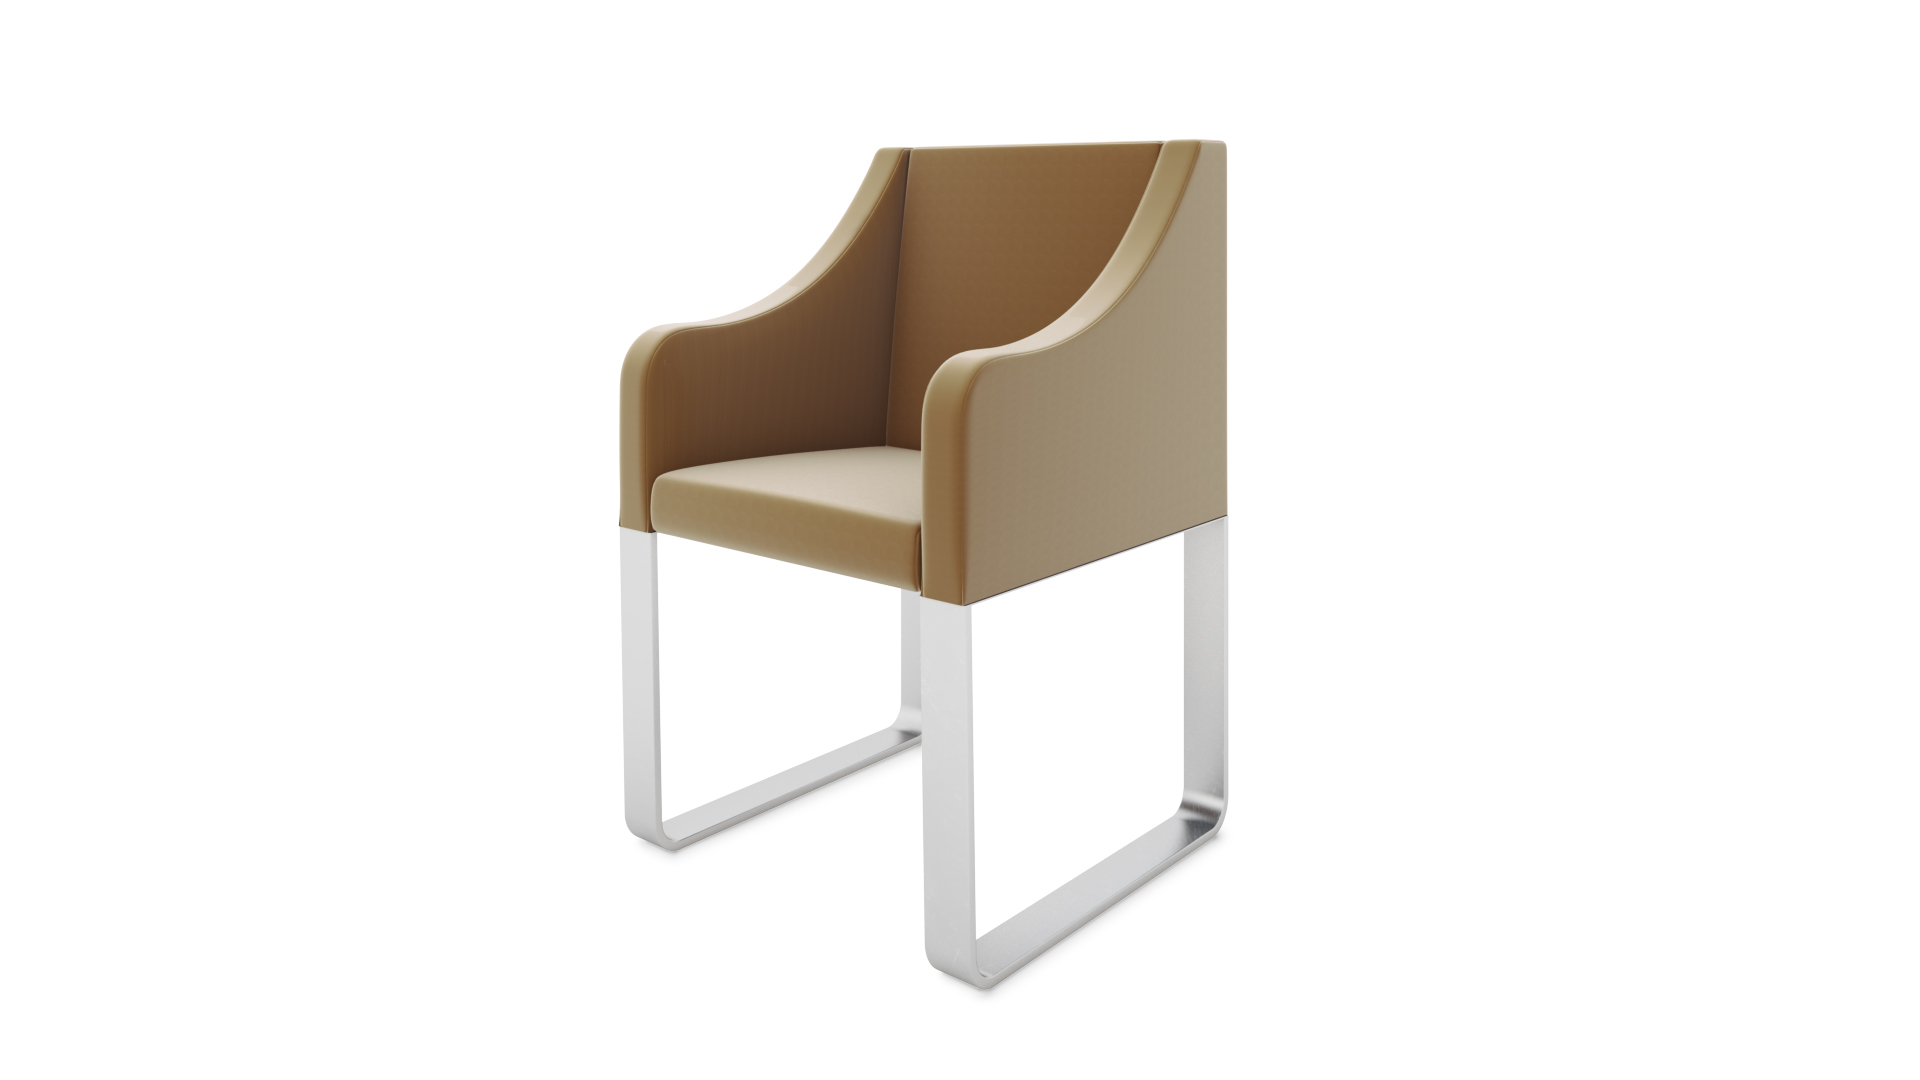 Chair 3D Silo Rendering